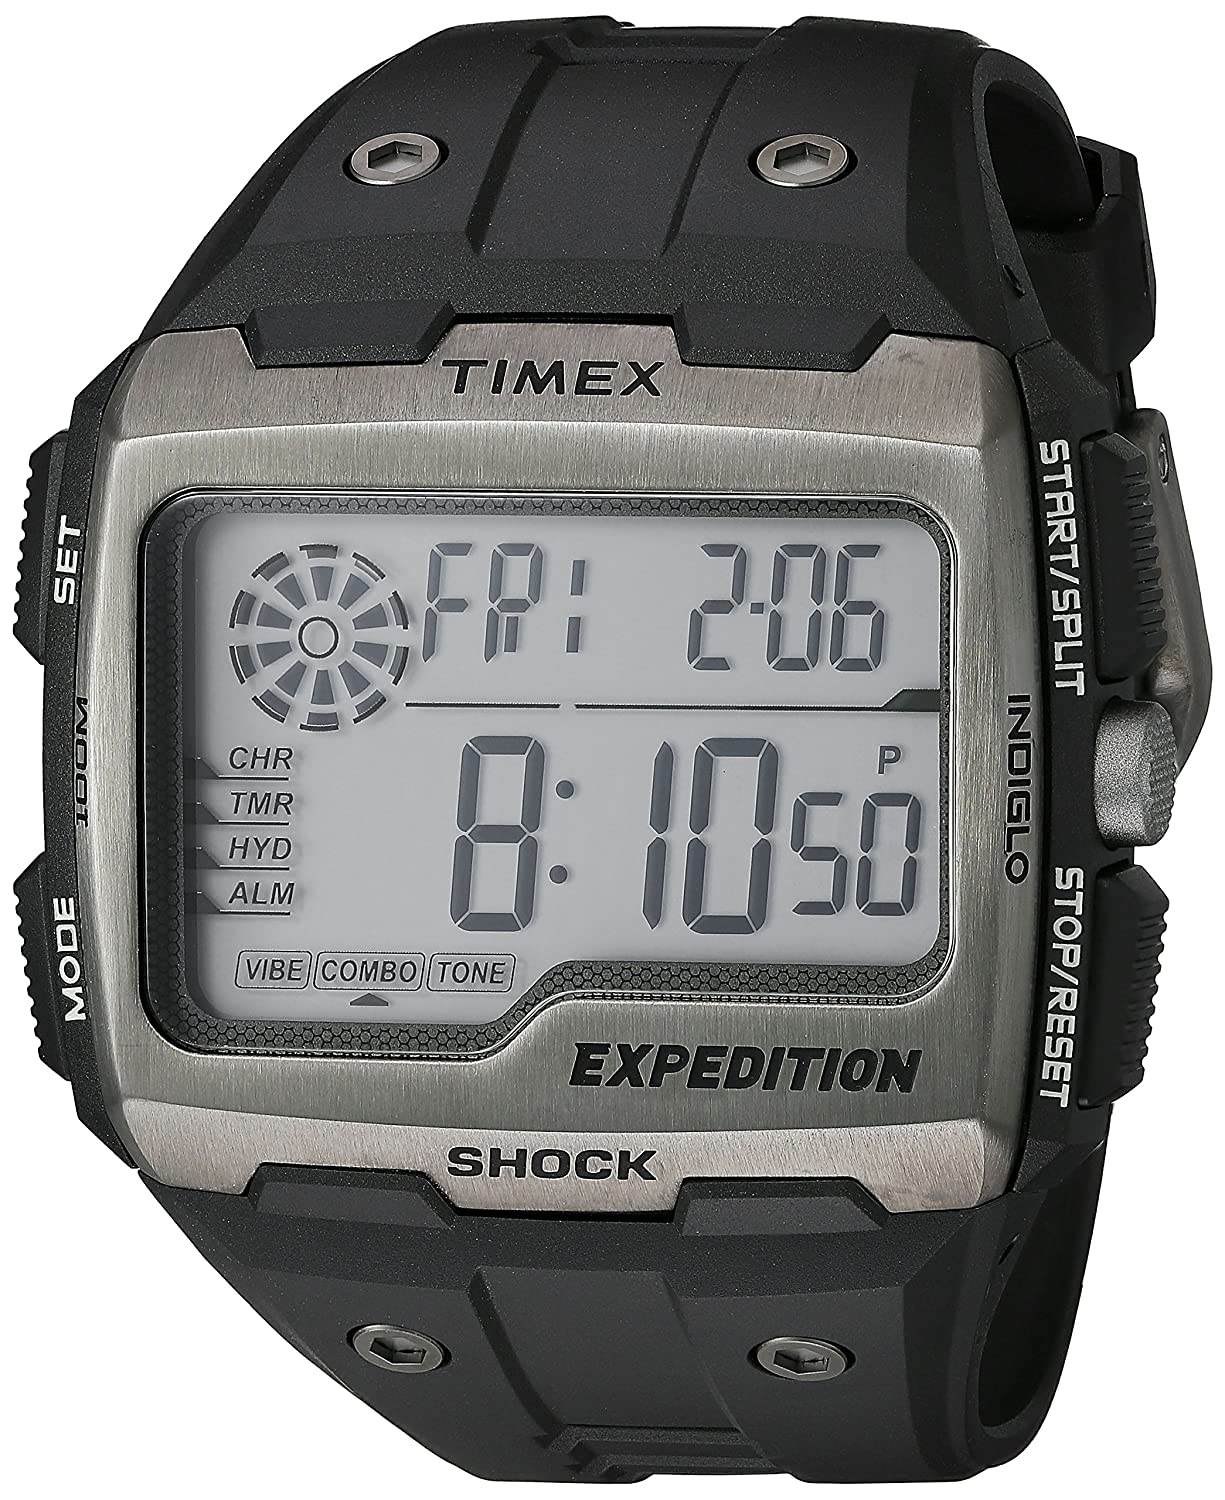 291903342864 likewise Timex T5k359 Mens Marathon Watch in addition Digital Pocket Watch together with At9030 55l together with P 17039 Casio ID 14 8DF Dijital Duvar Saati OZENSAAT IZMIR. on timex alarm